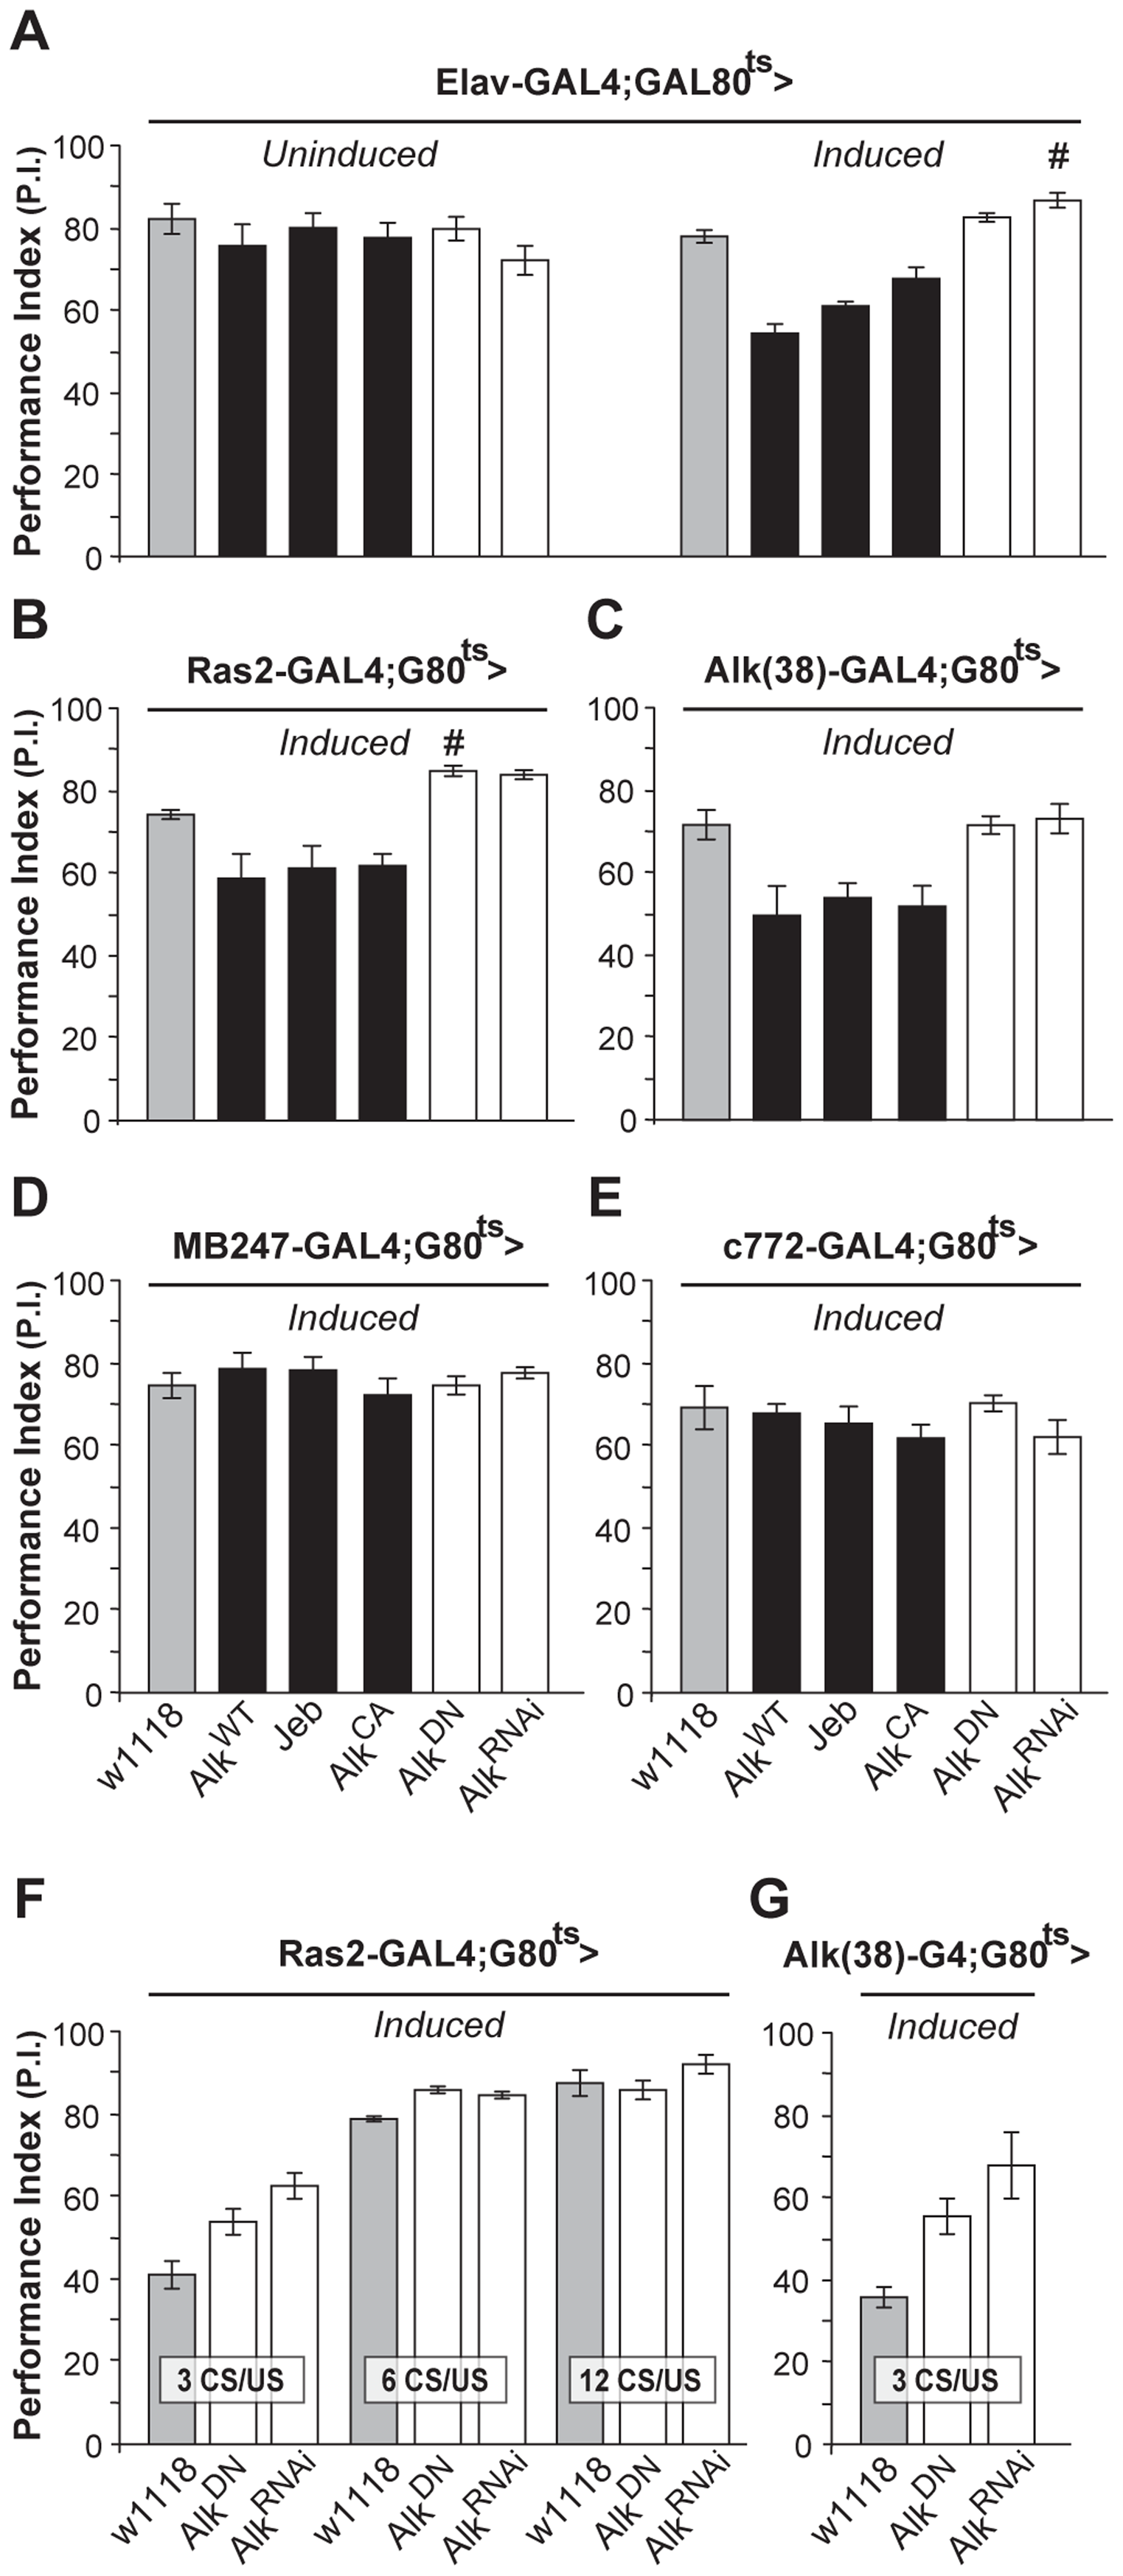 dAlk activity in adult neurons negatively regulates olfactory learning.